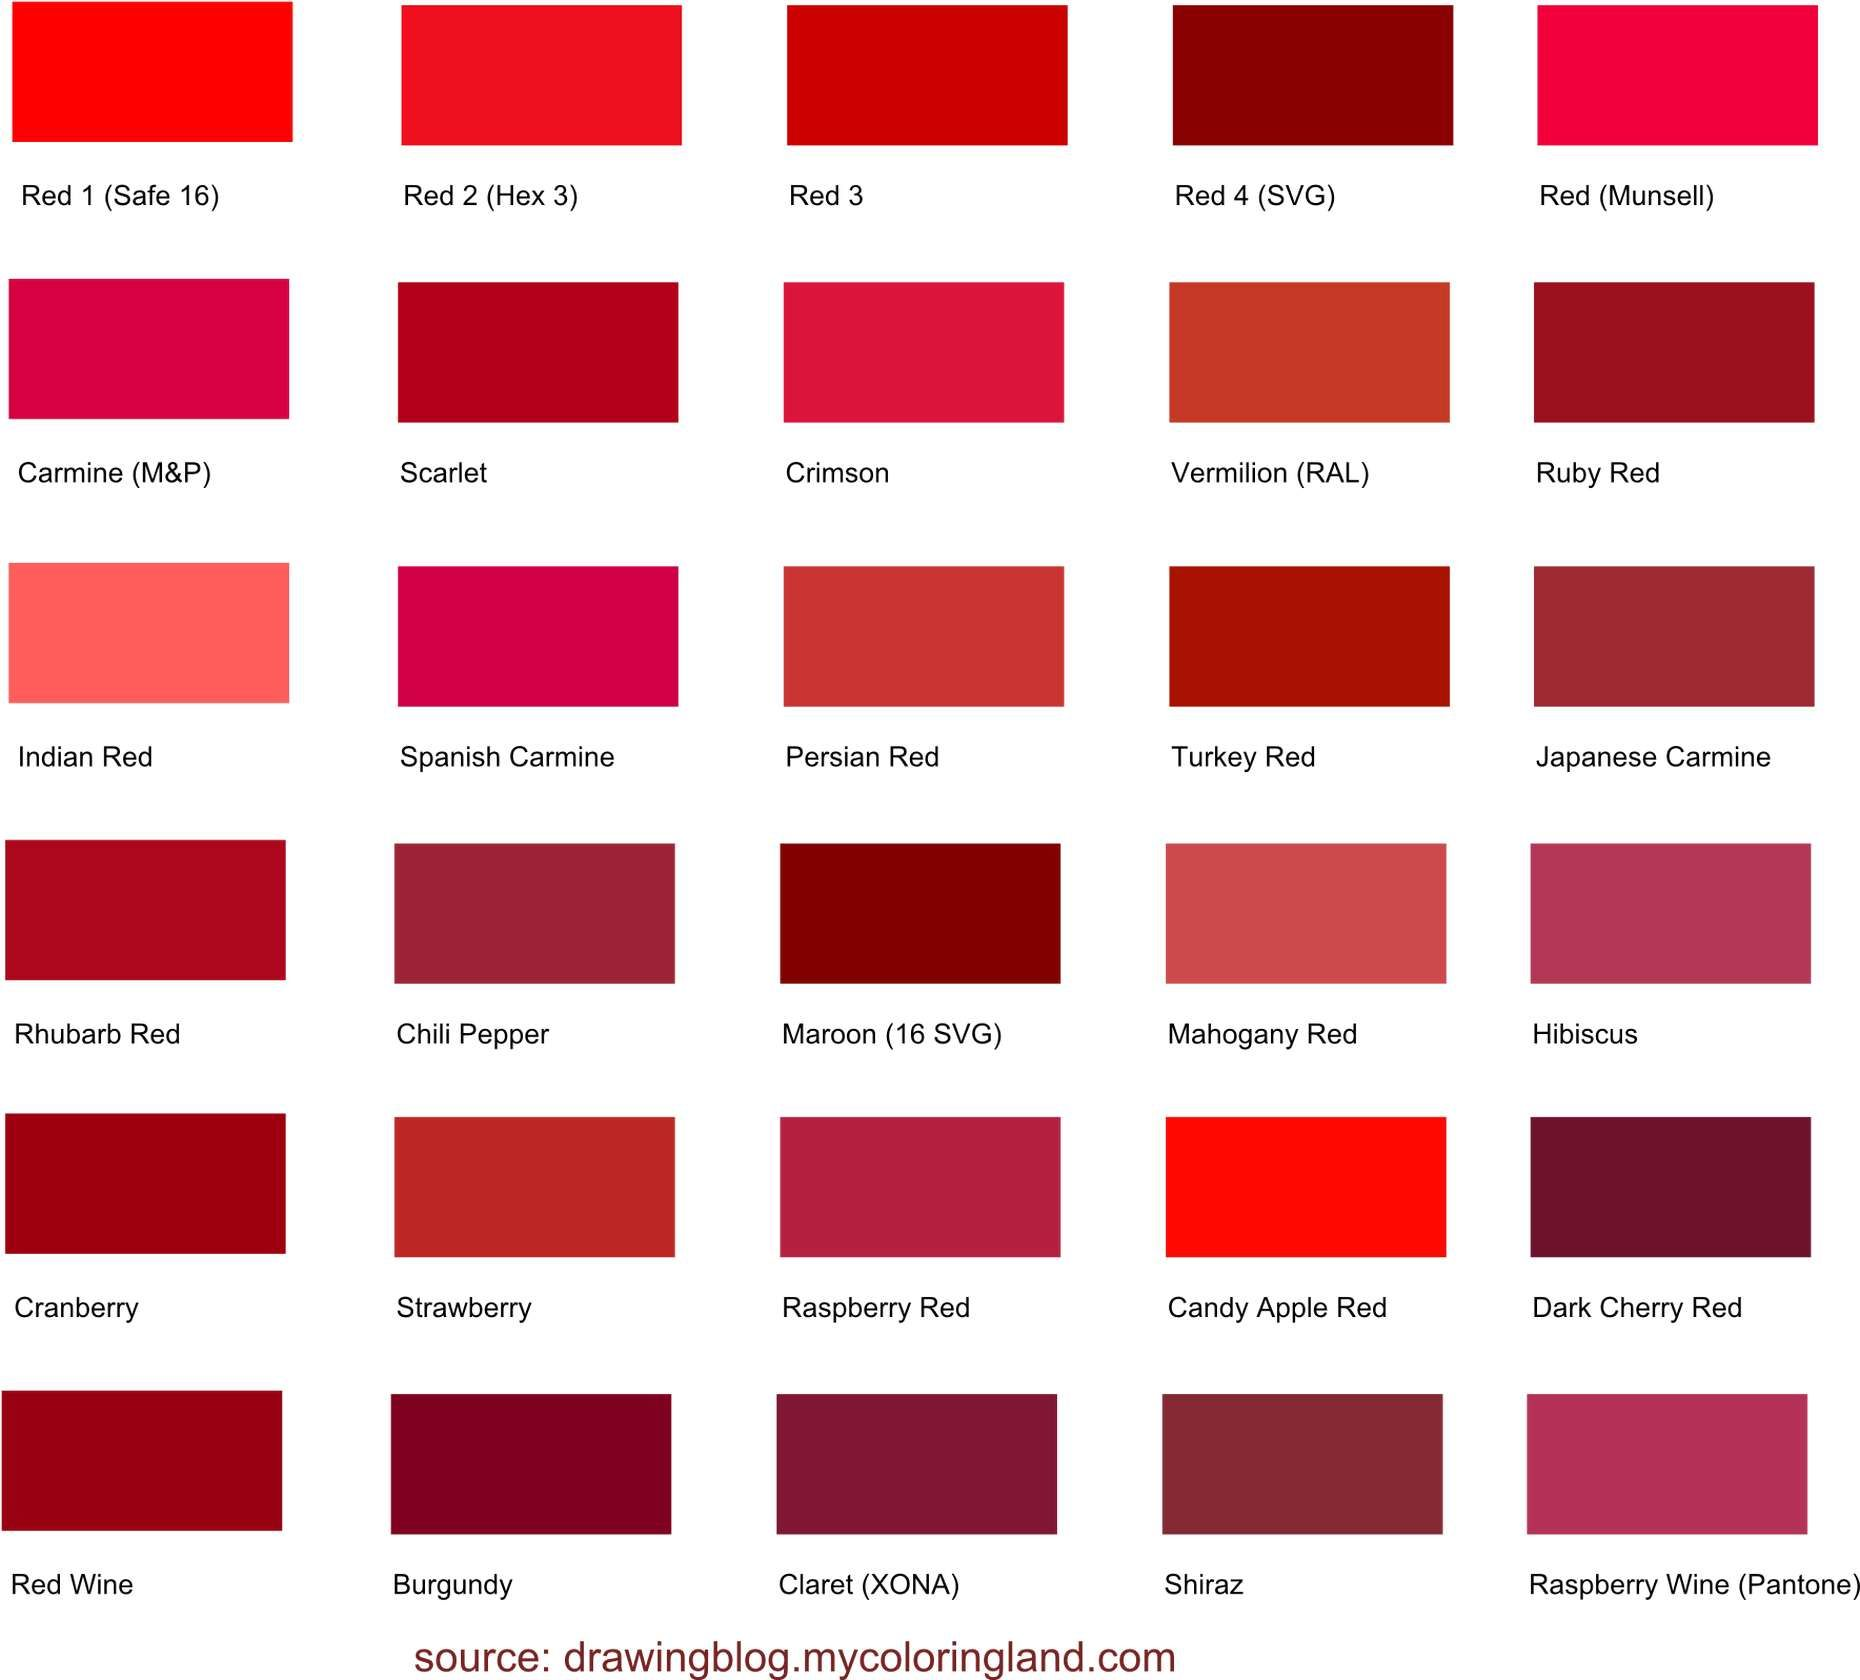 Longest List Of Diffe Shades Red Color All Are Presented With Names And Hex Code Values